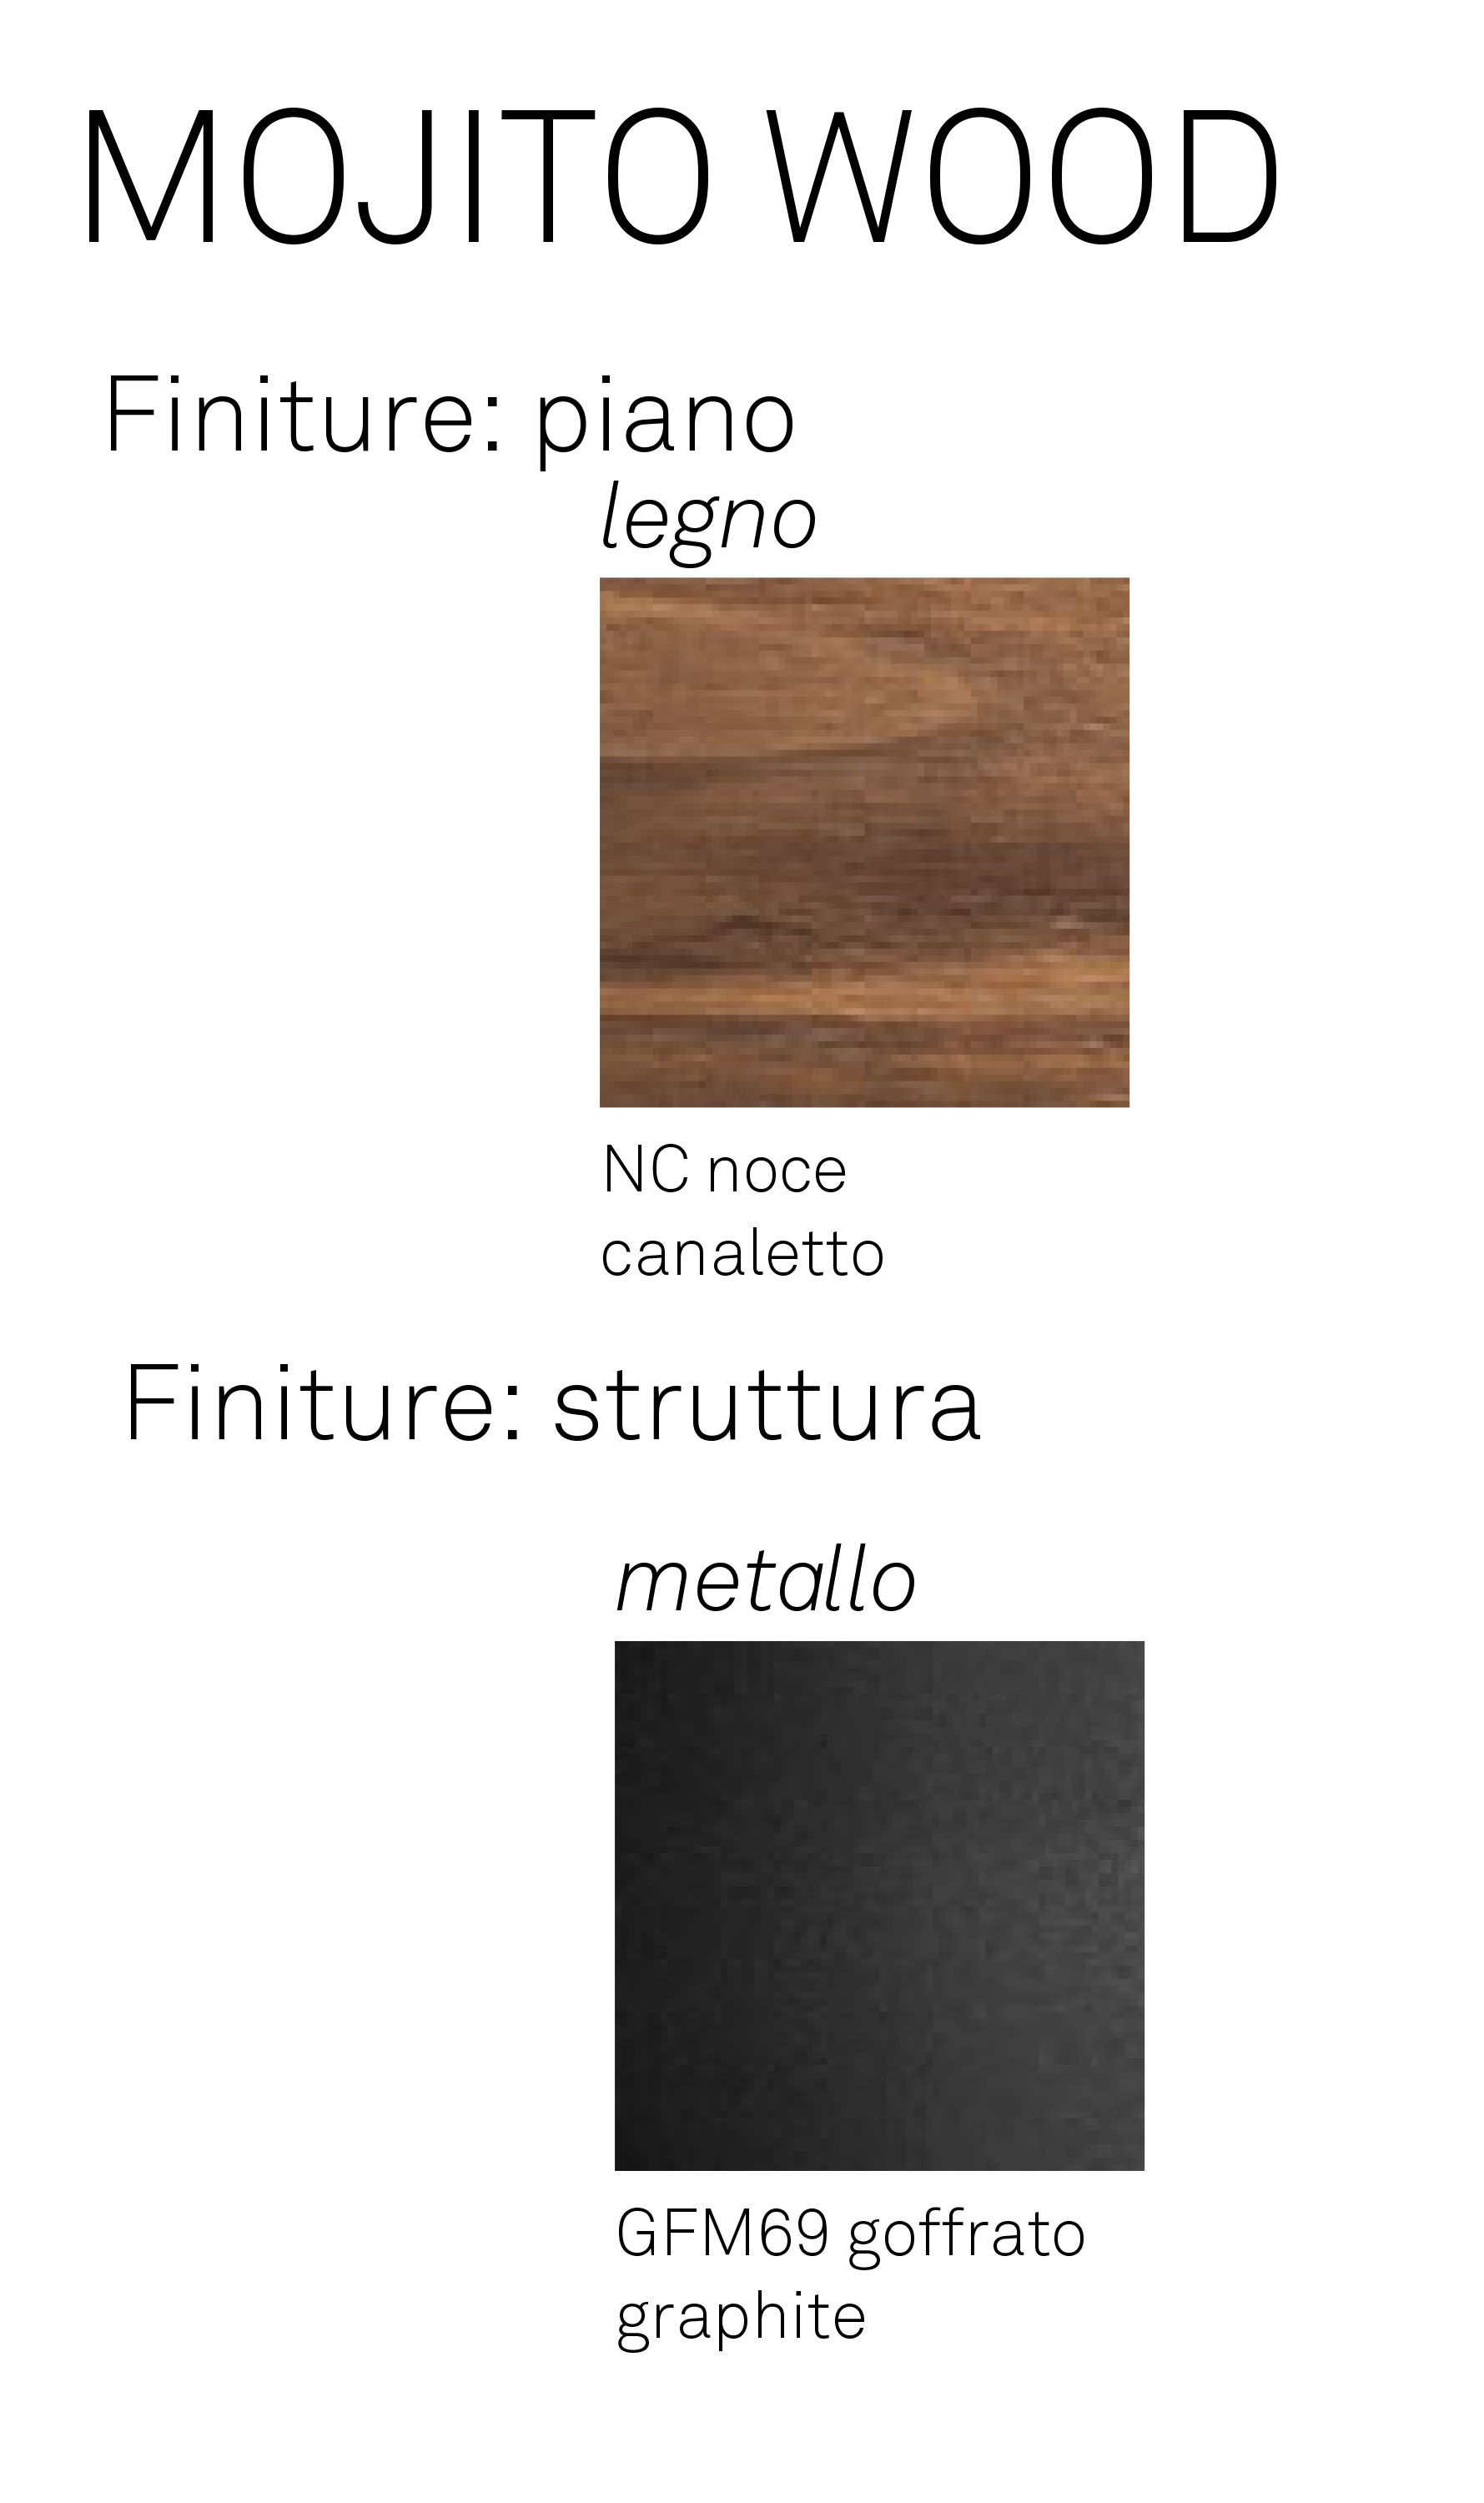 Carrello bar Mojito Wood finiture